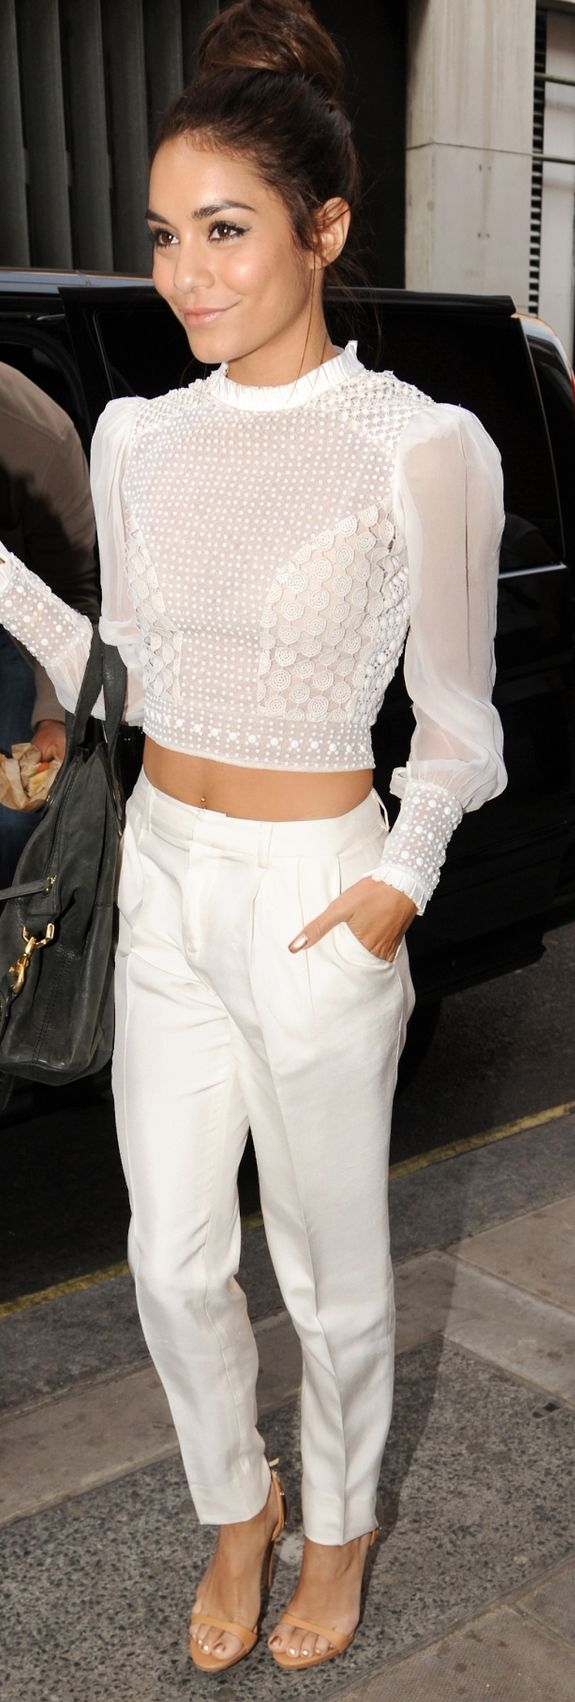 white-top-and-pants.jpg